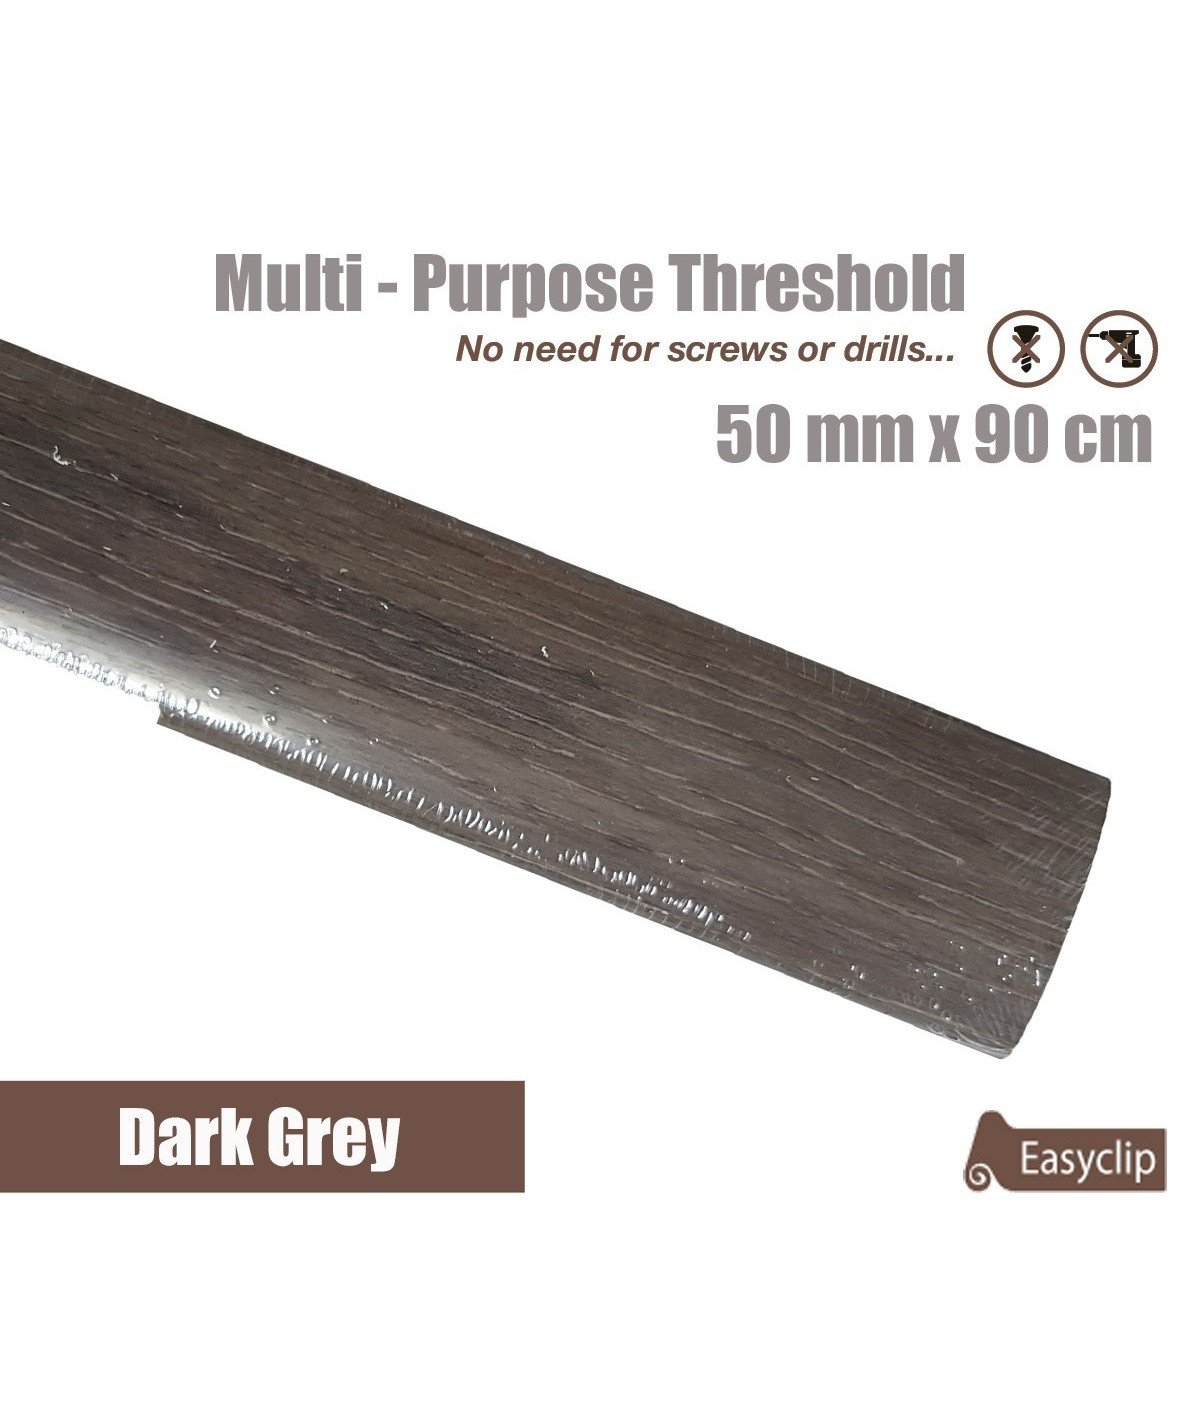 Dark Grey Laminated Transition Threshold Strip 50mm x 90cm Multi-Height/Pivots